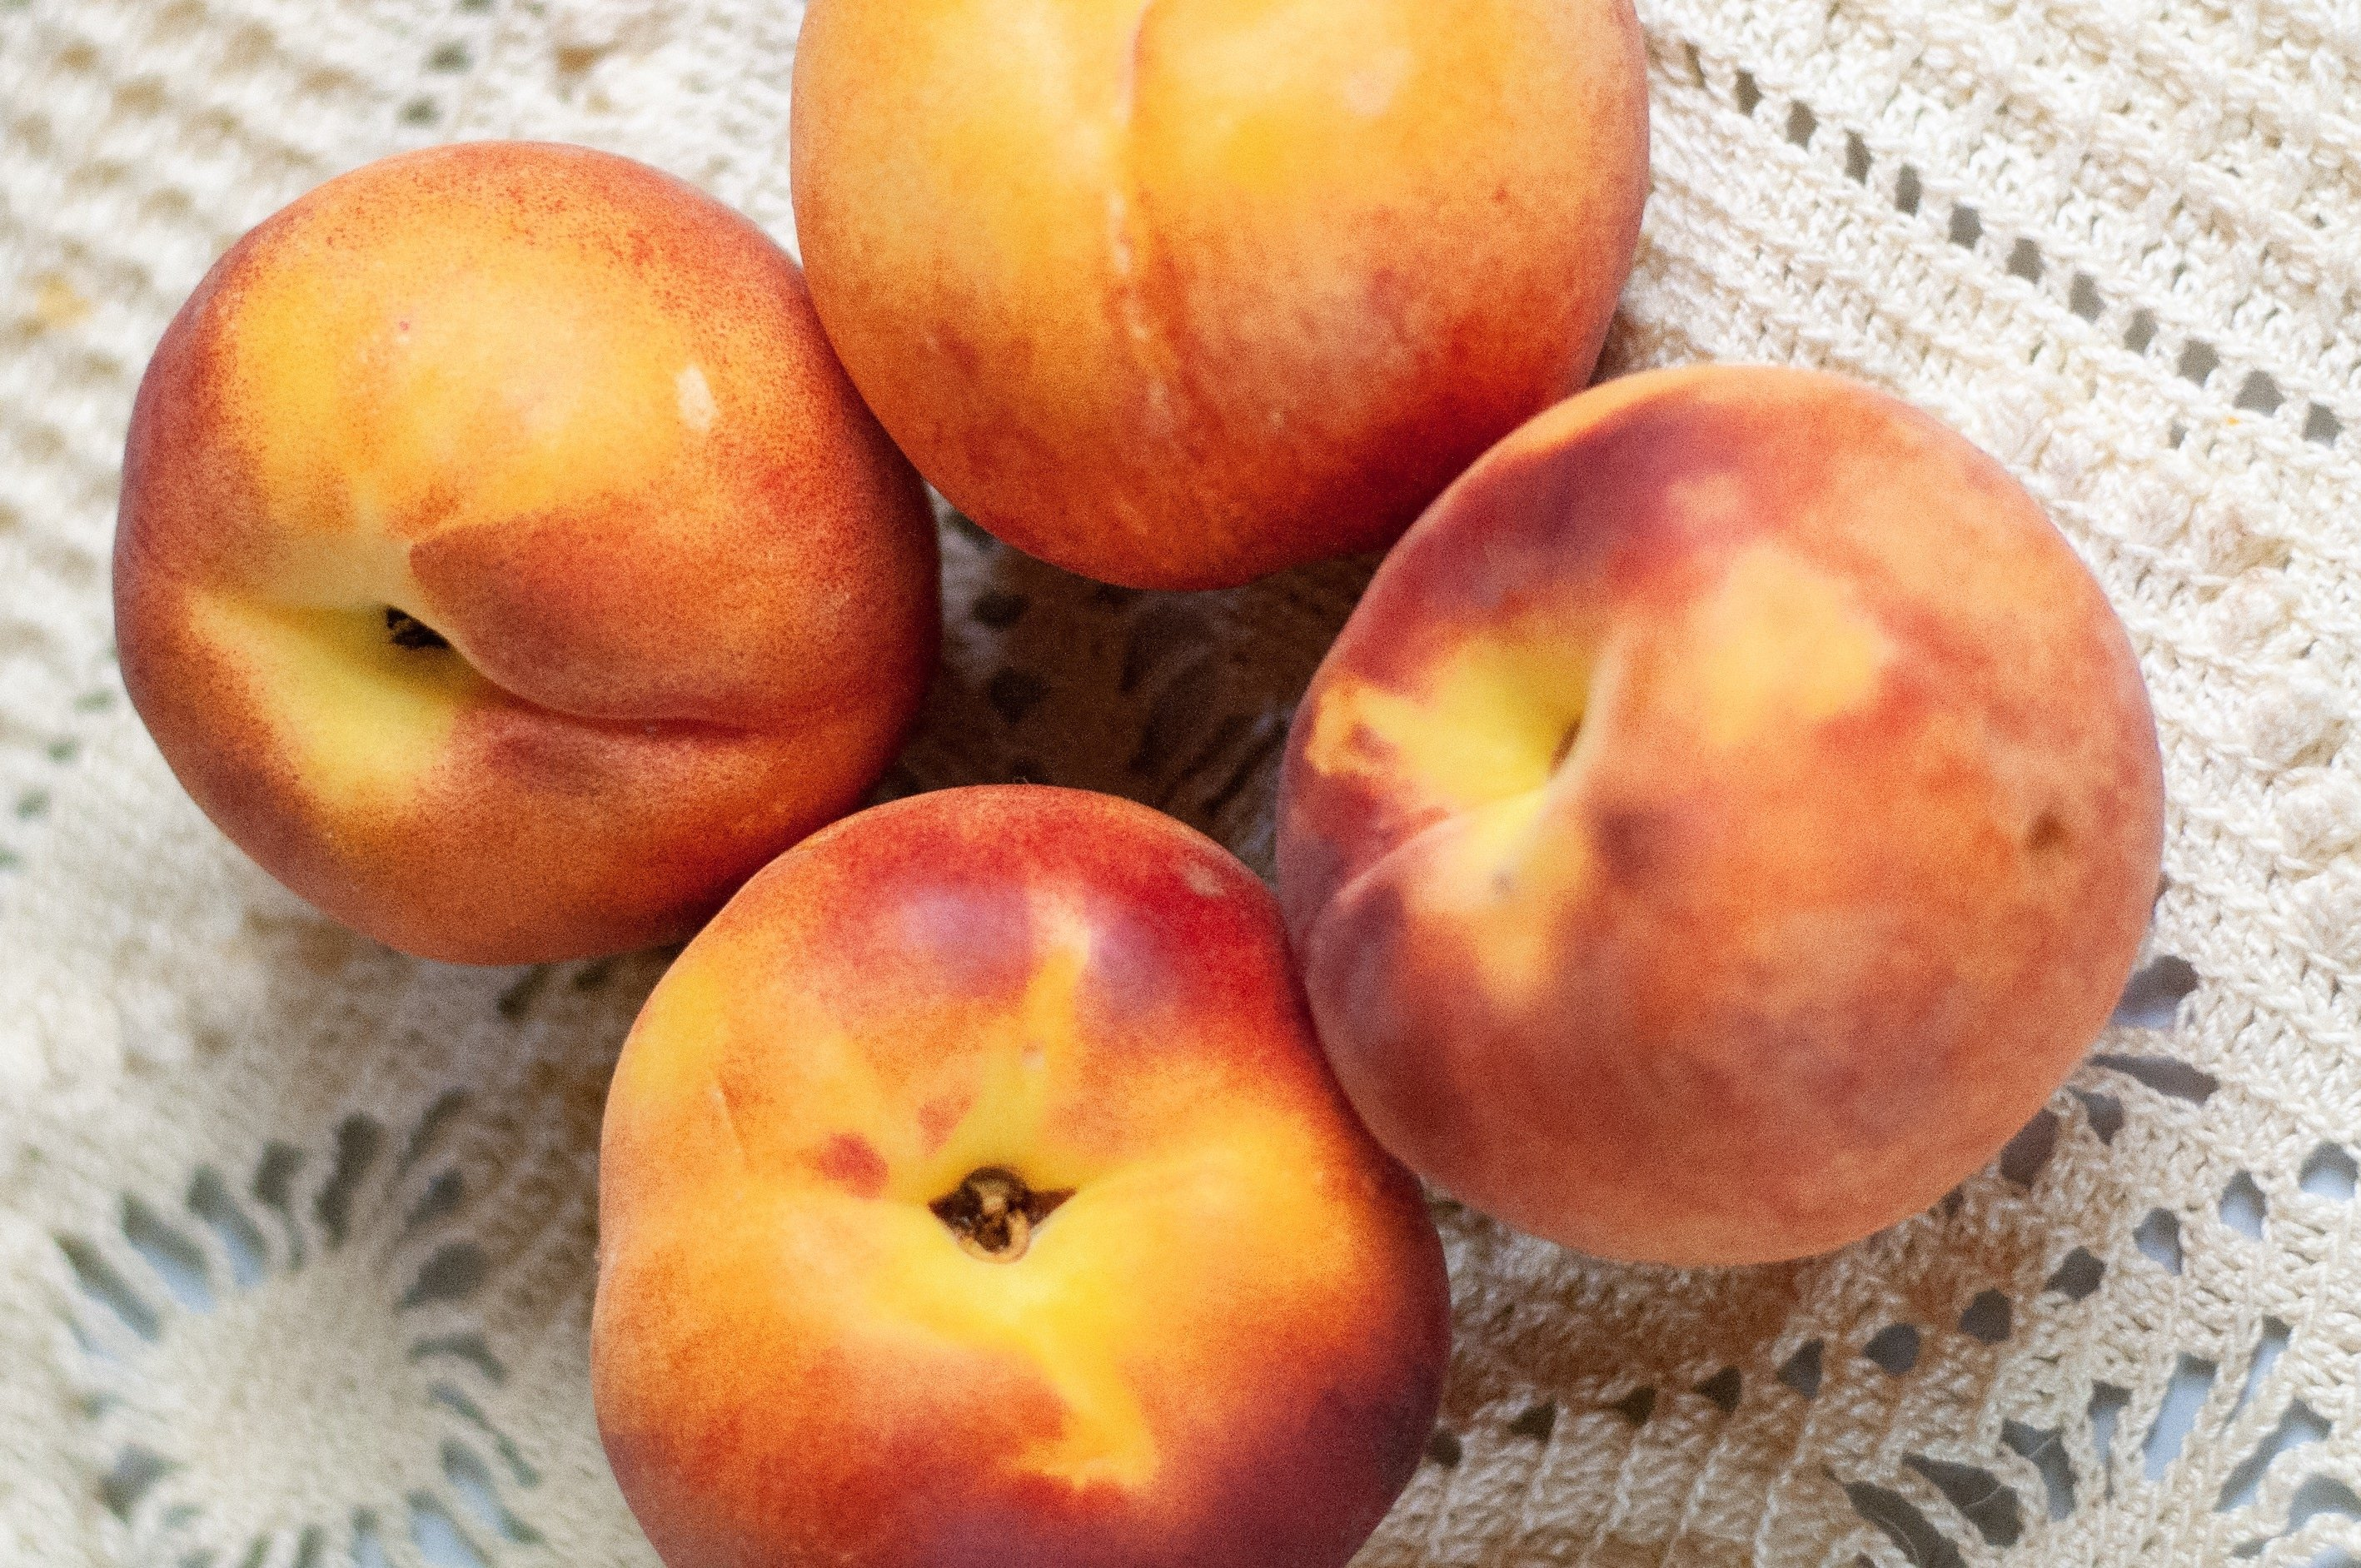 Four whole peaches resting on a beige background.